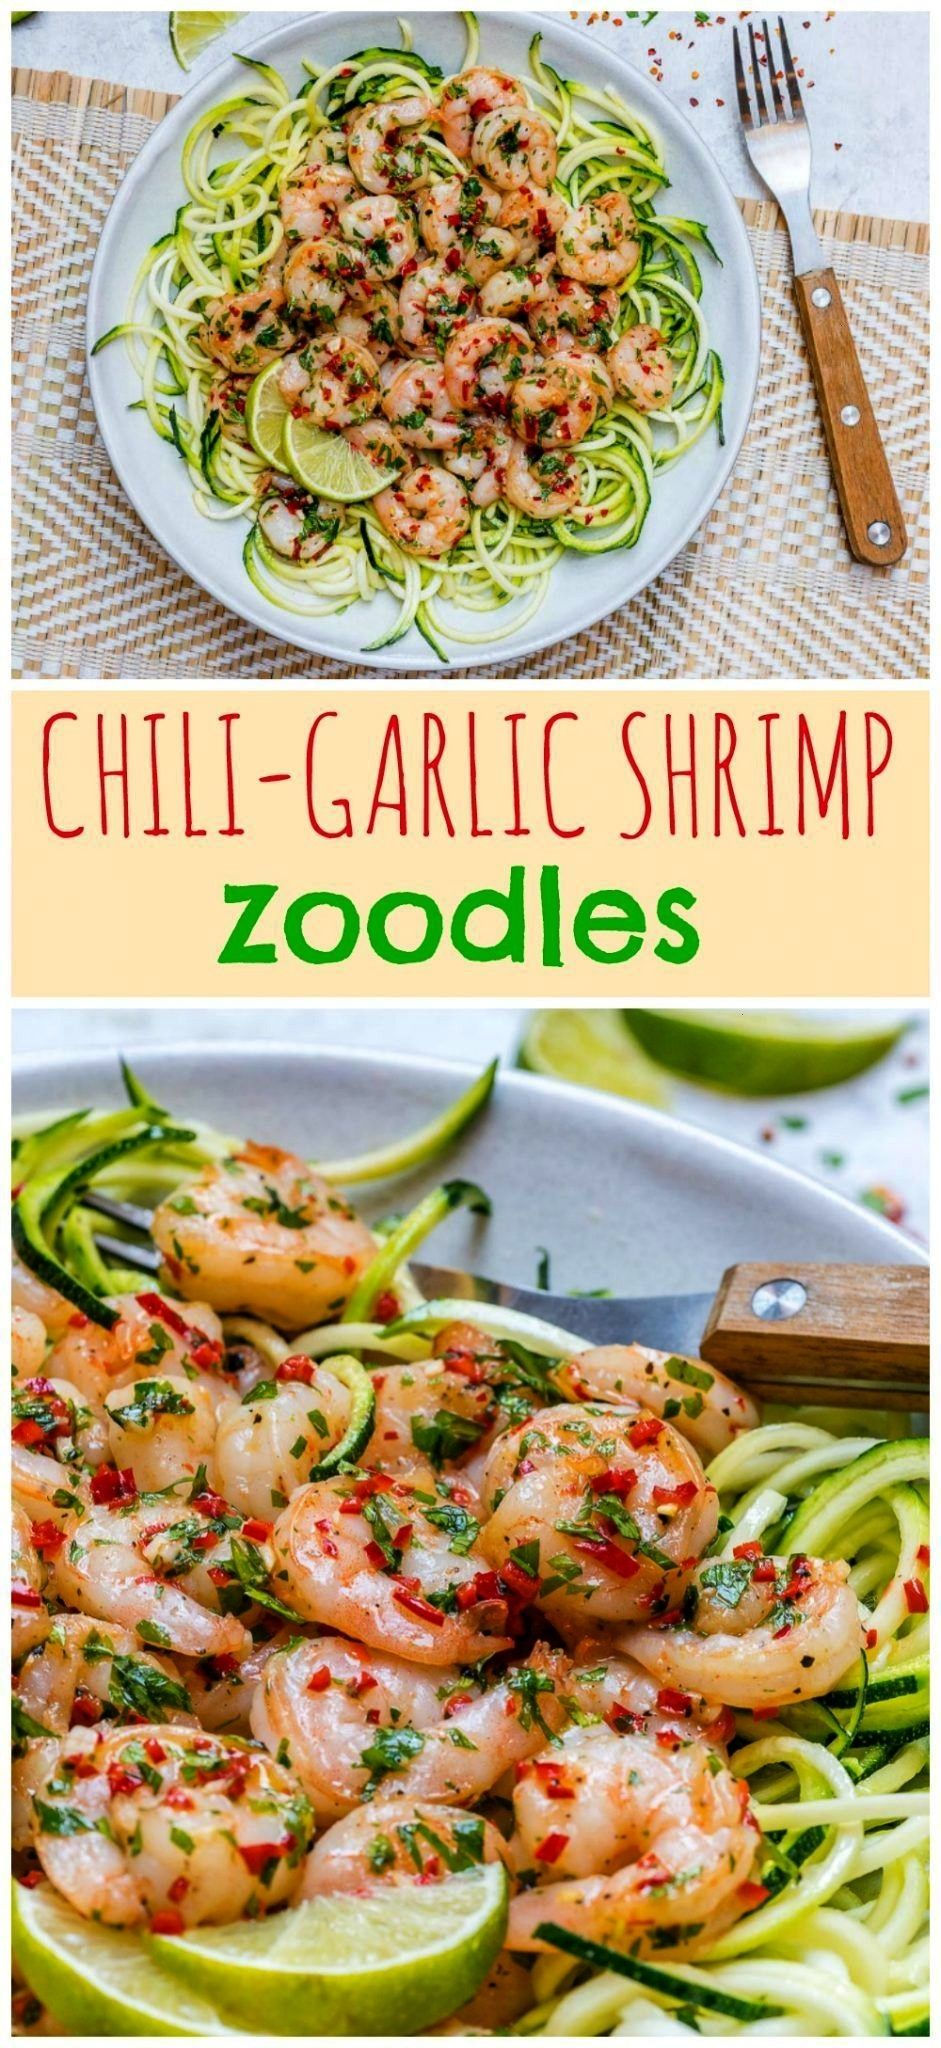 Garlic Shrimp Zoodles -  Clean Eating Chili Garlic Shrimp Zoodles Are Low Carb & Super Yummy! – C